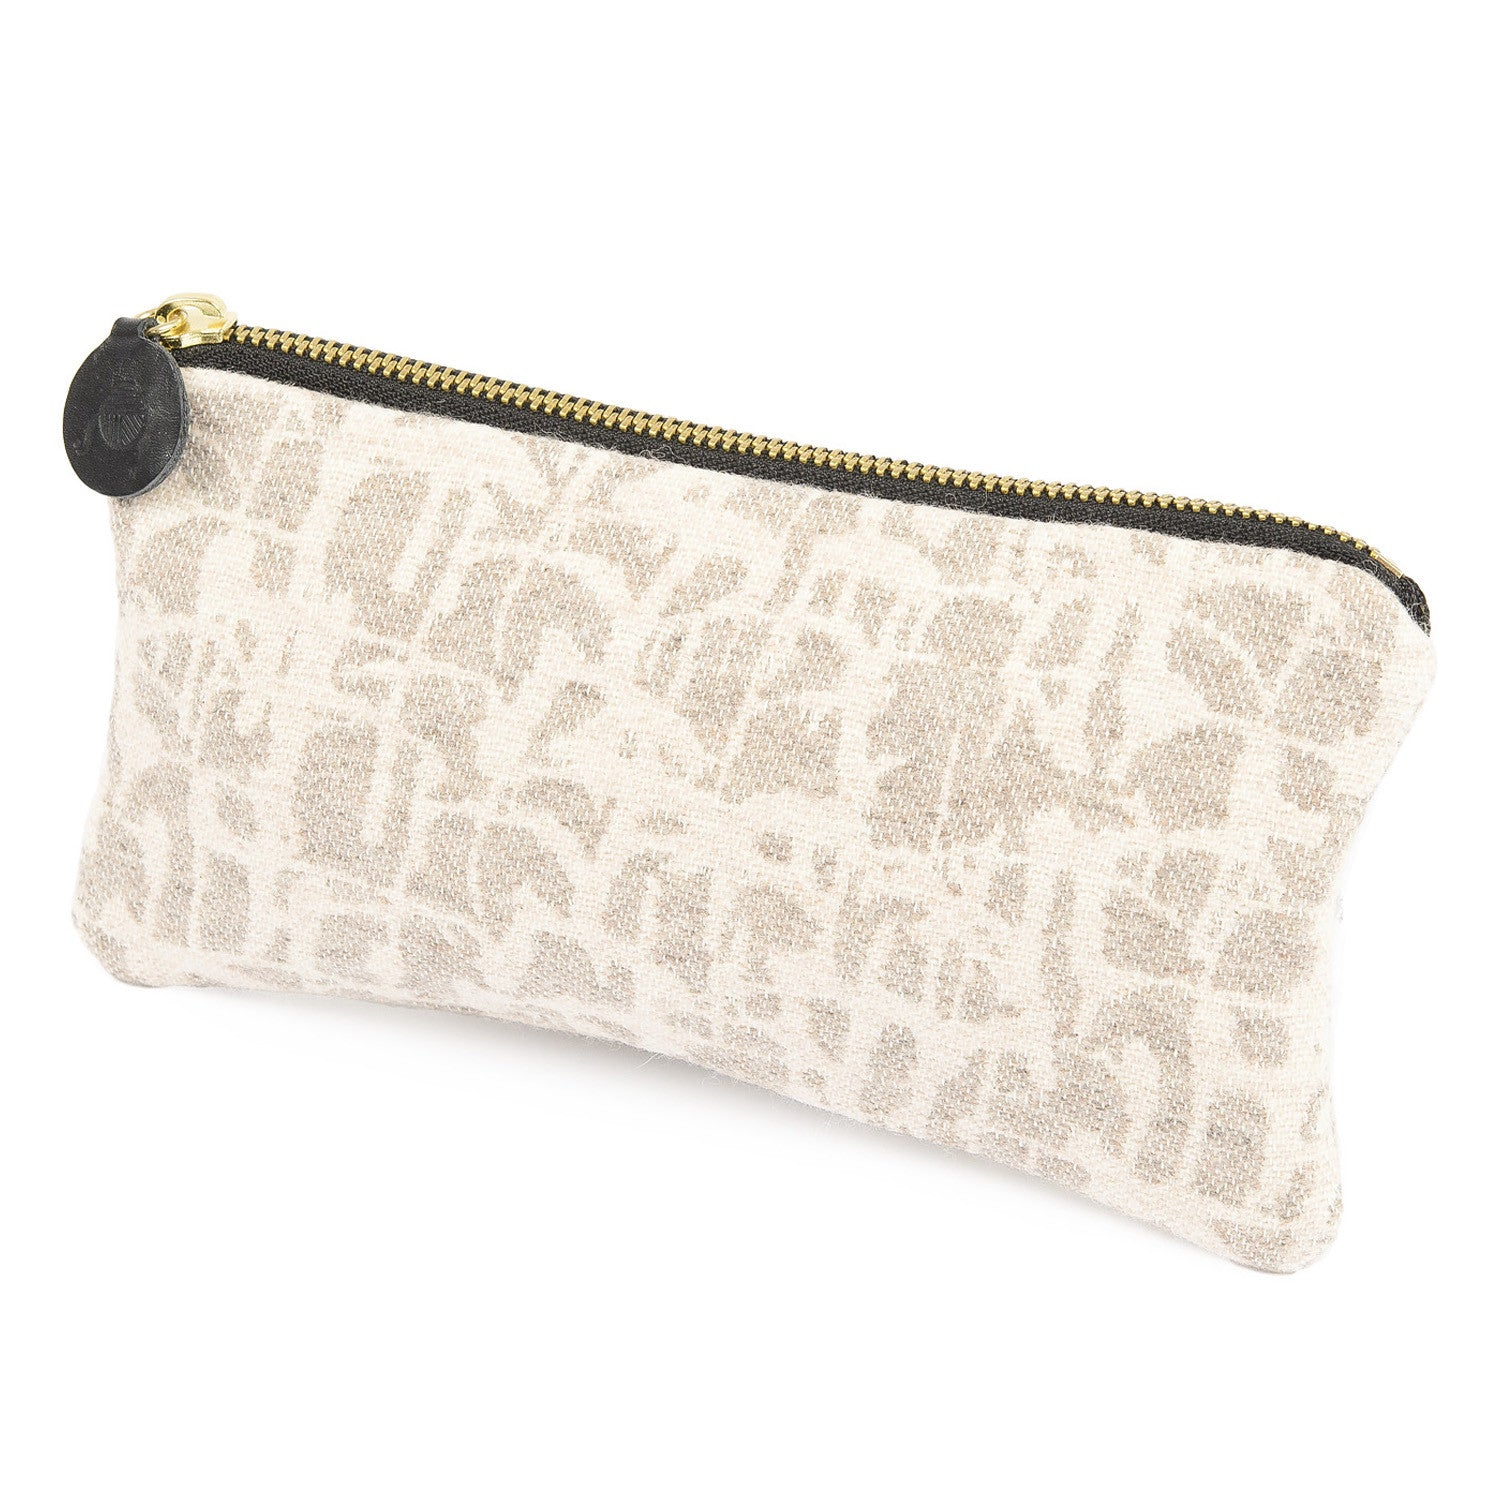 Merino Lambswool Zip Purse - Boulder Mushroom & Ecru - Tori Murphy Ltd